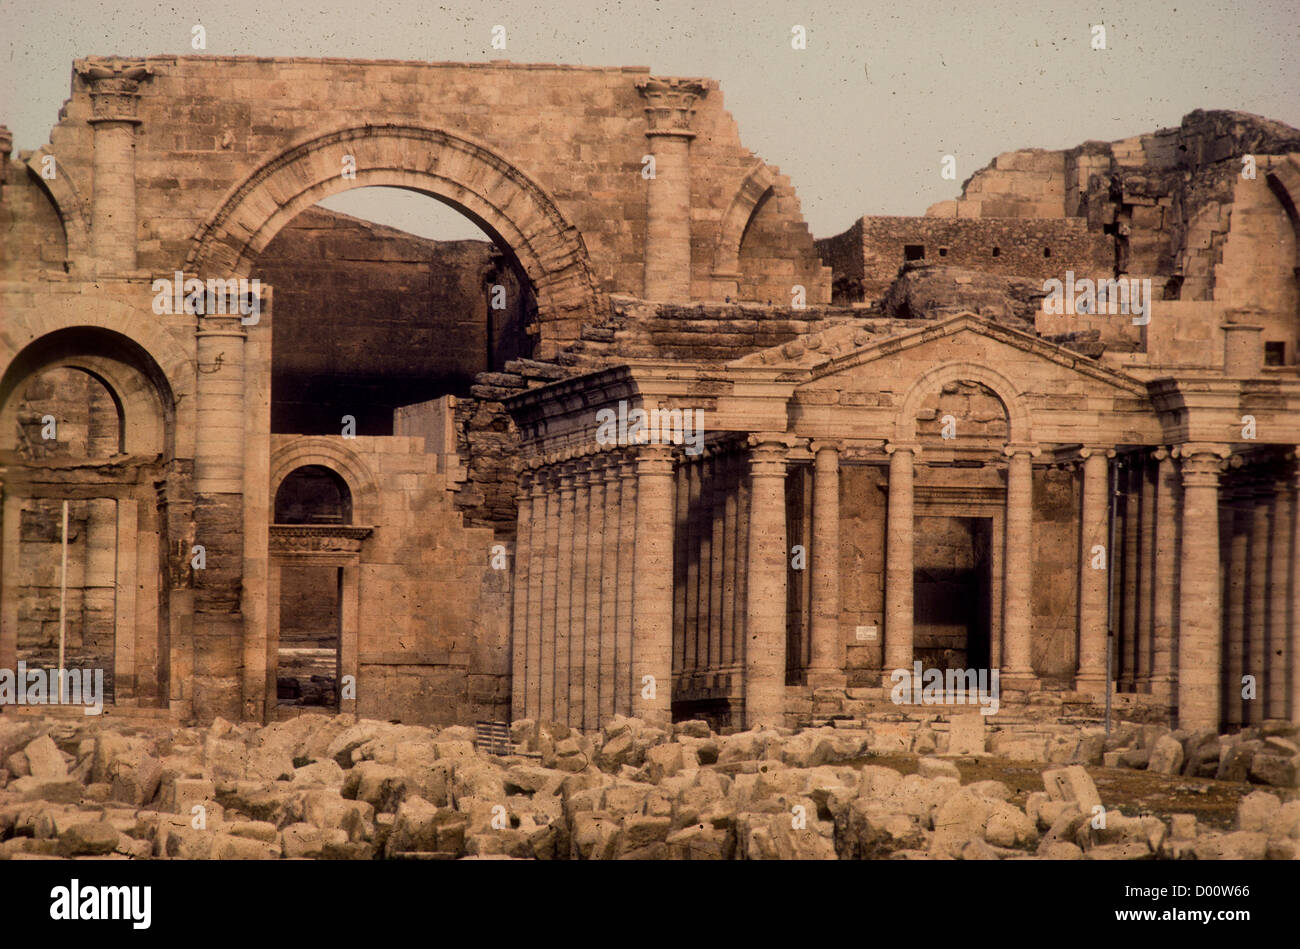 ruins of ancient Parthian fortified city of Hatra in Northern Iraq - Stock Image